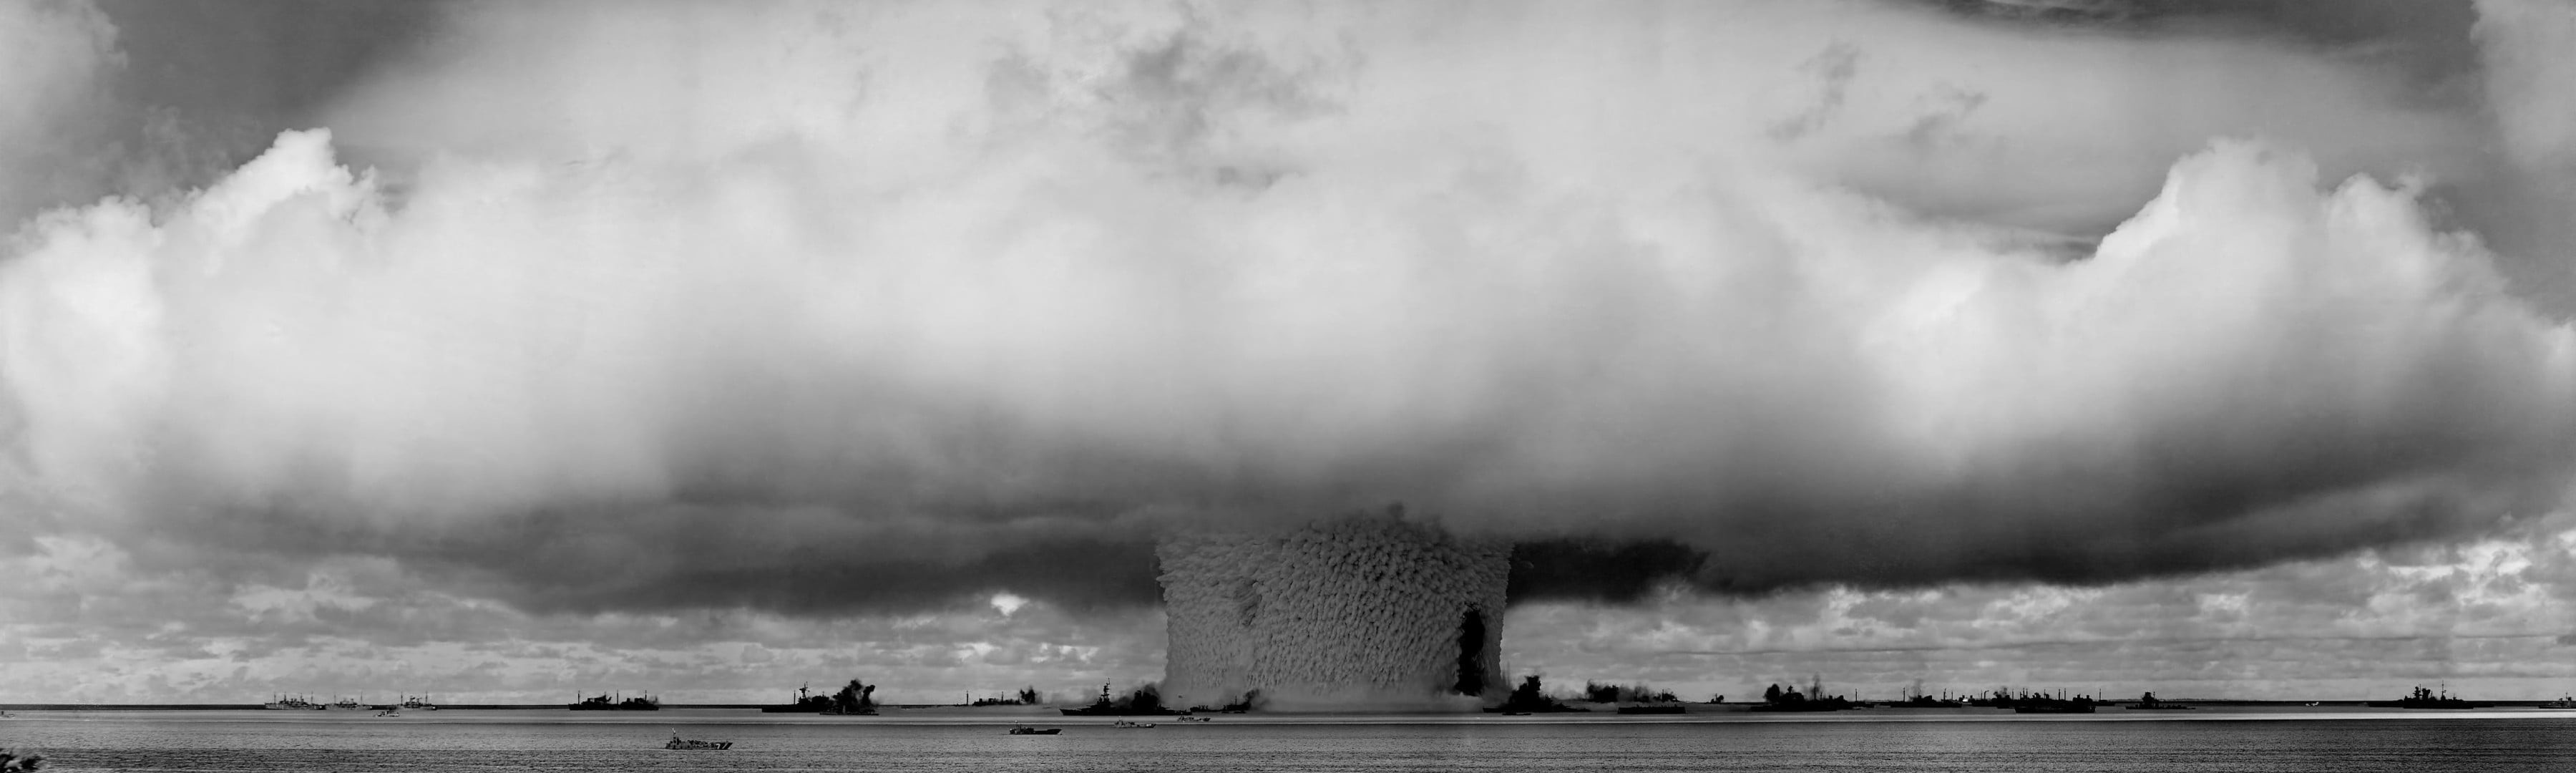 3600x1080 mushroom cloud, atomic bomb, monochrome HD wallpaper